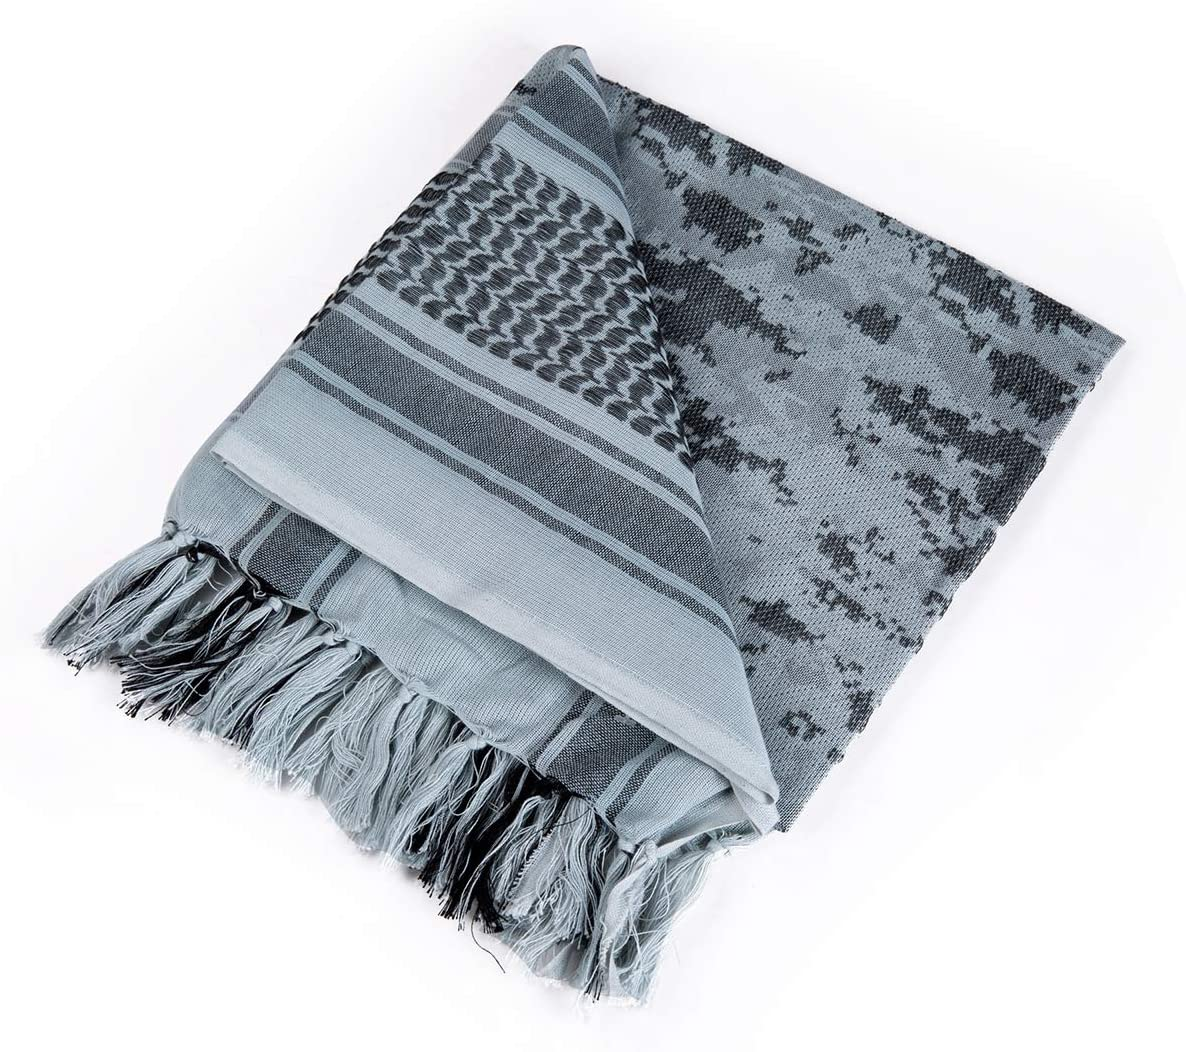 FREE SOLDIER 100/% Cotton Military Shemagh Mens Scarves Tactical Desert Scarf keffiyeh Wrap for Women